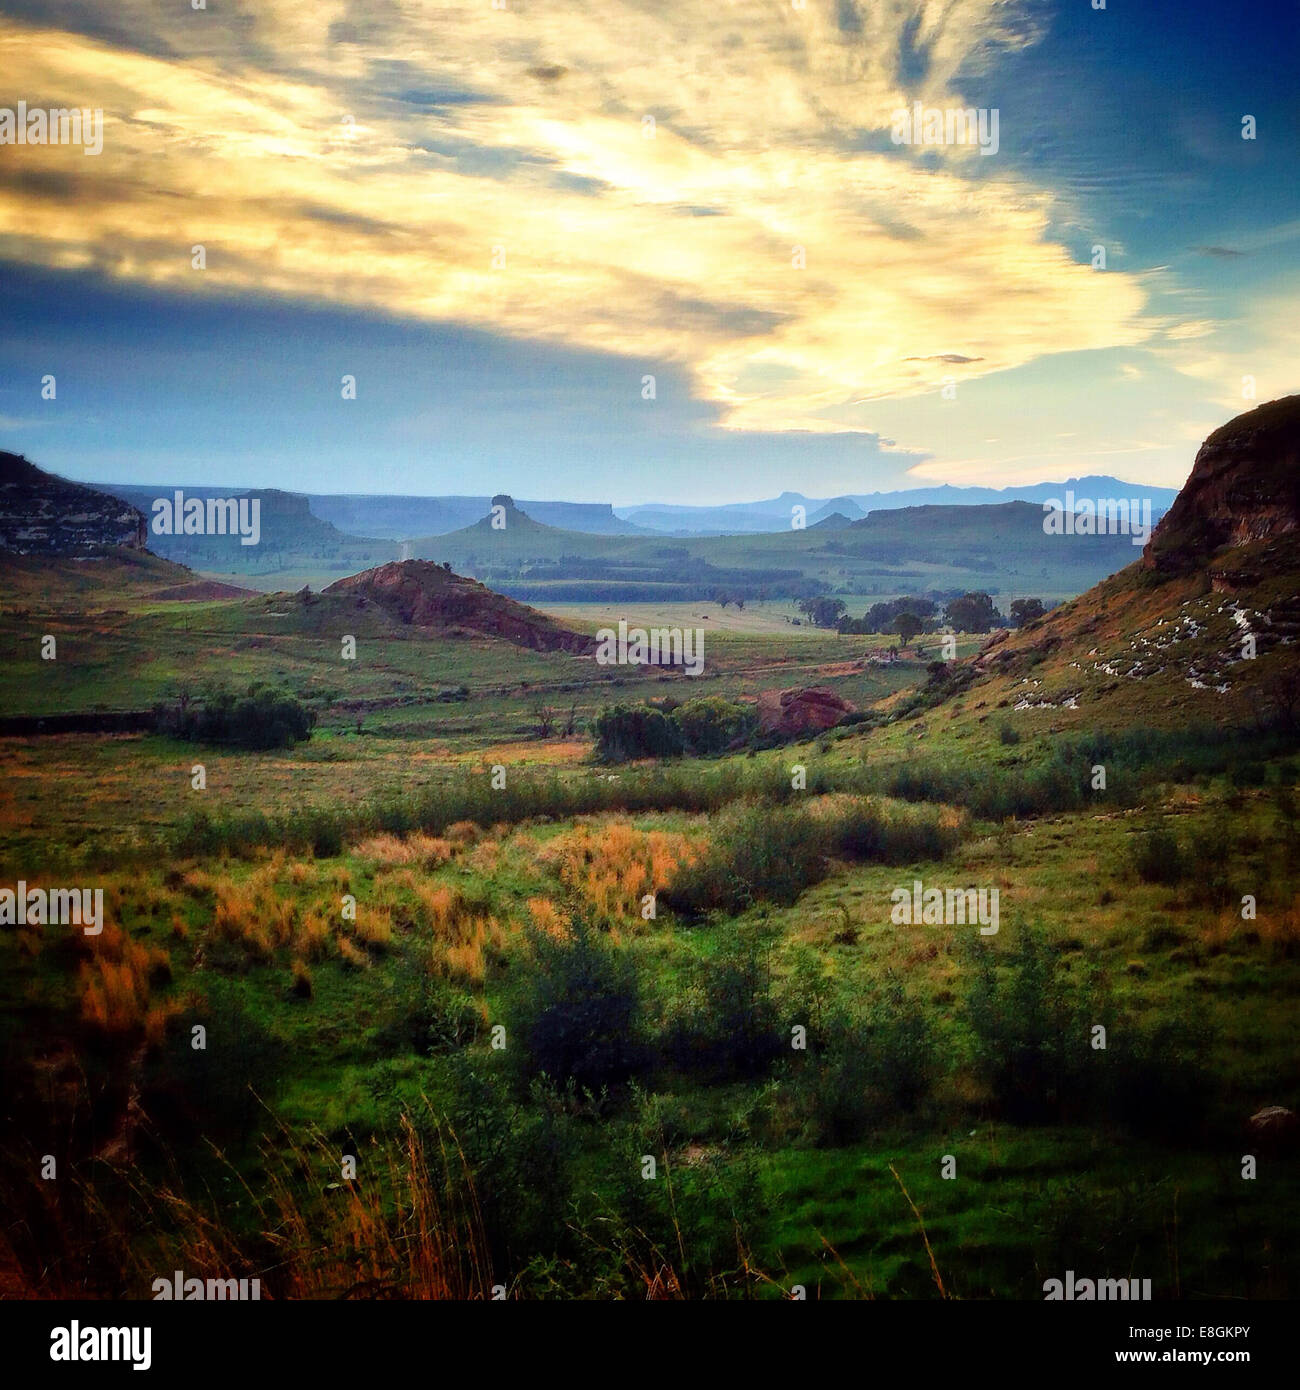 Bloemfontein, Clarens, Bayswater, South Africa Endless Valleys In Clarens - Stock Image